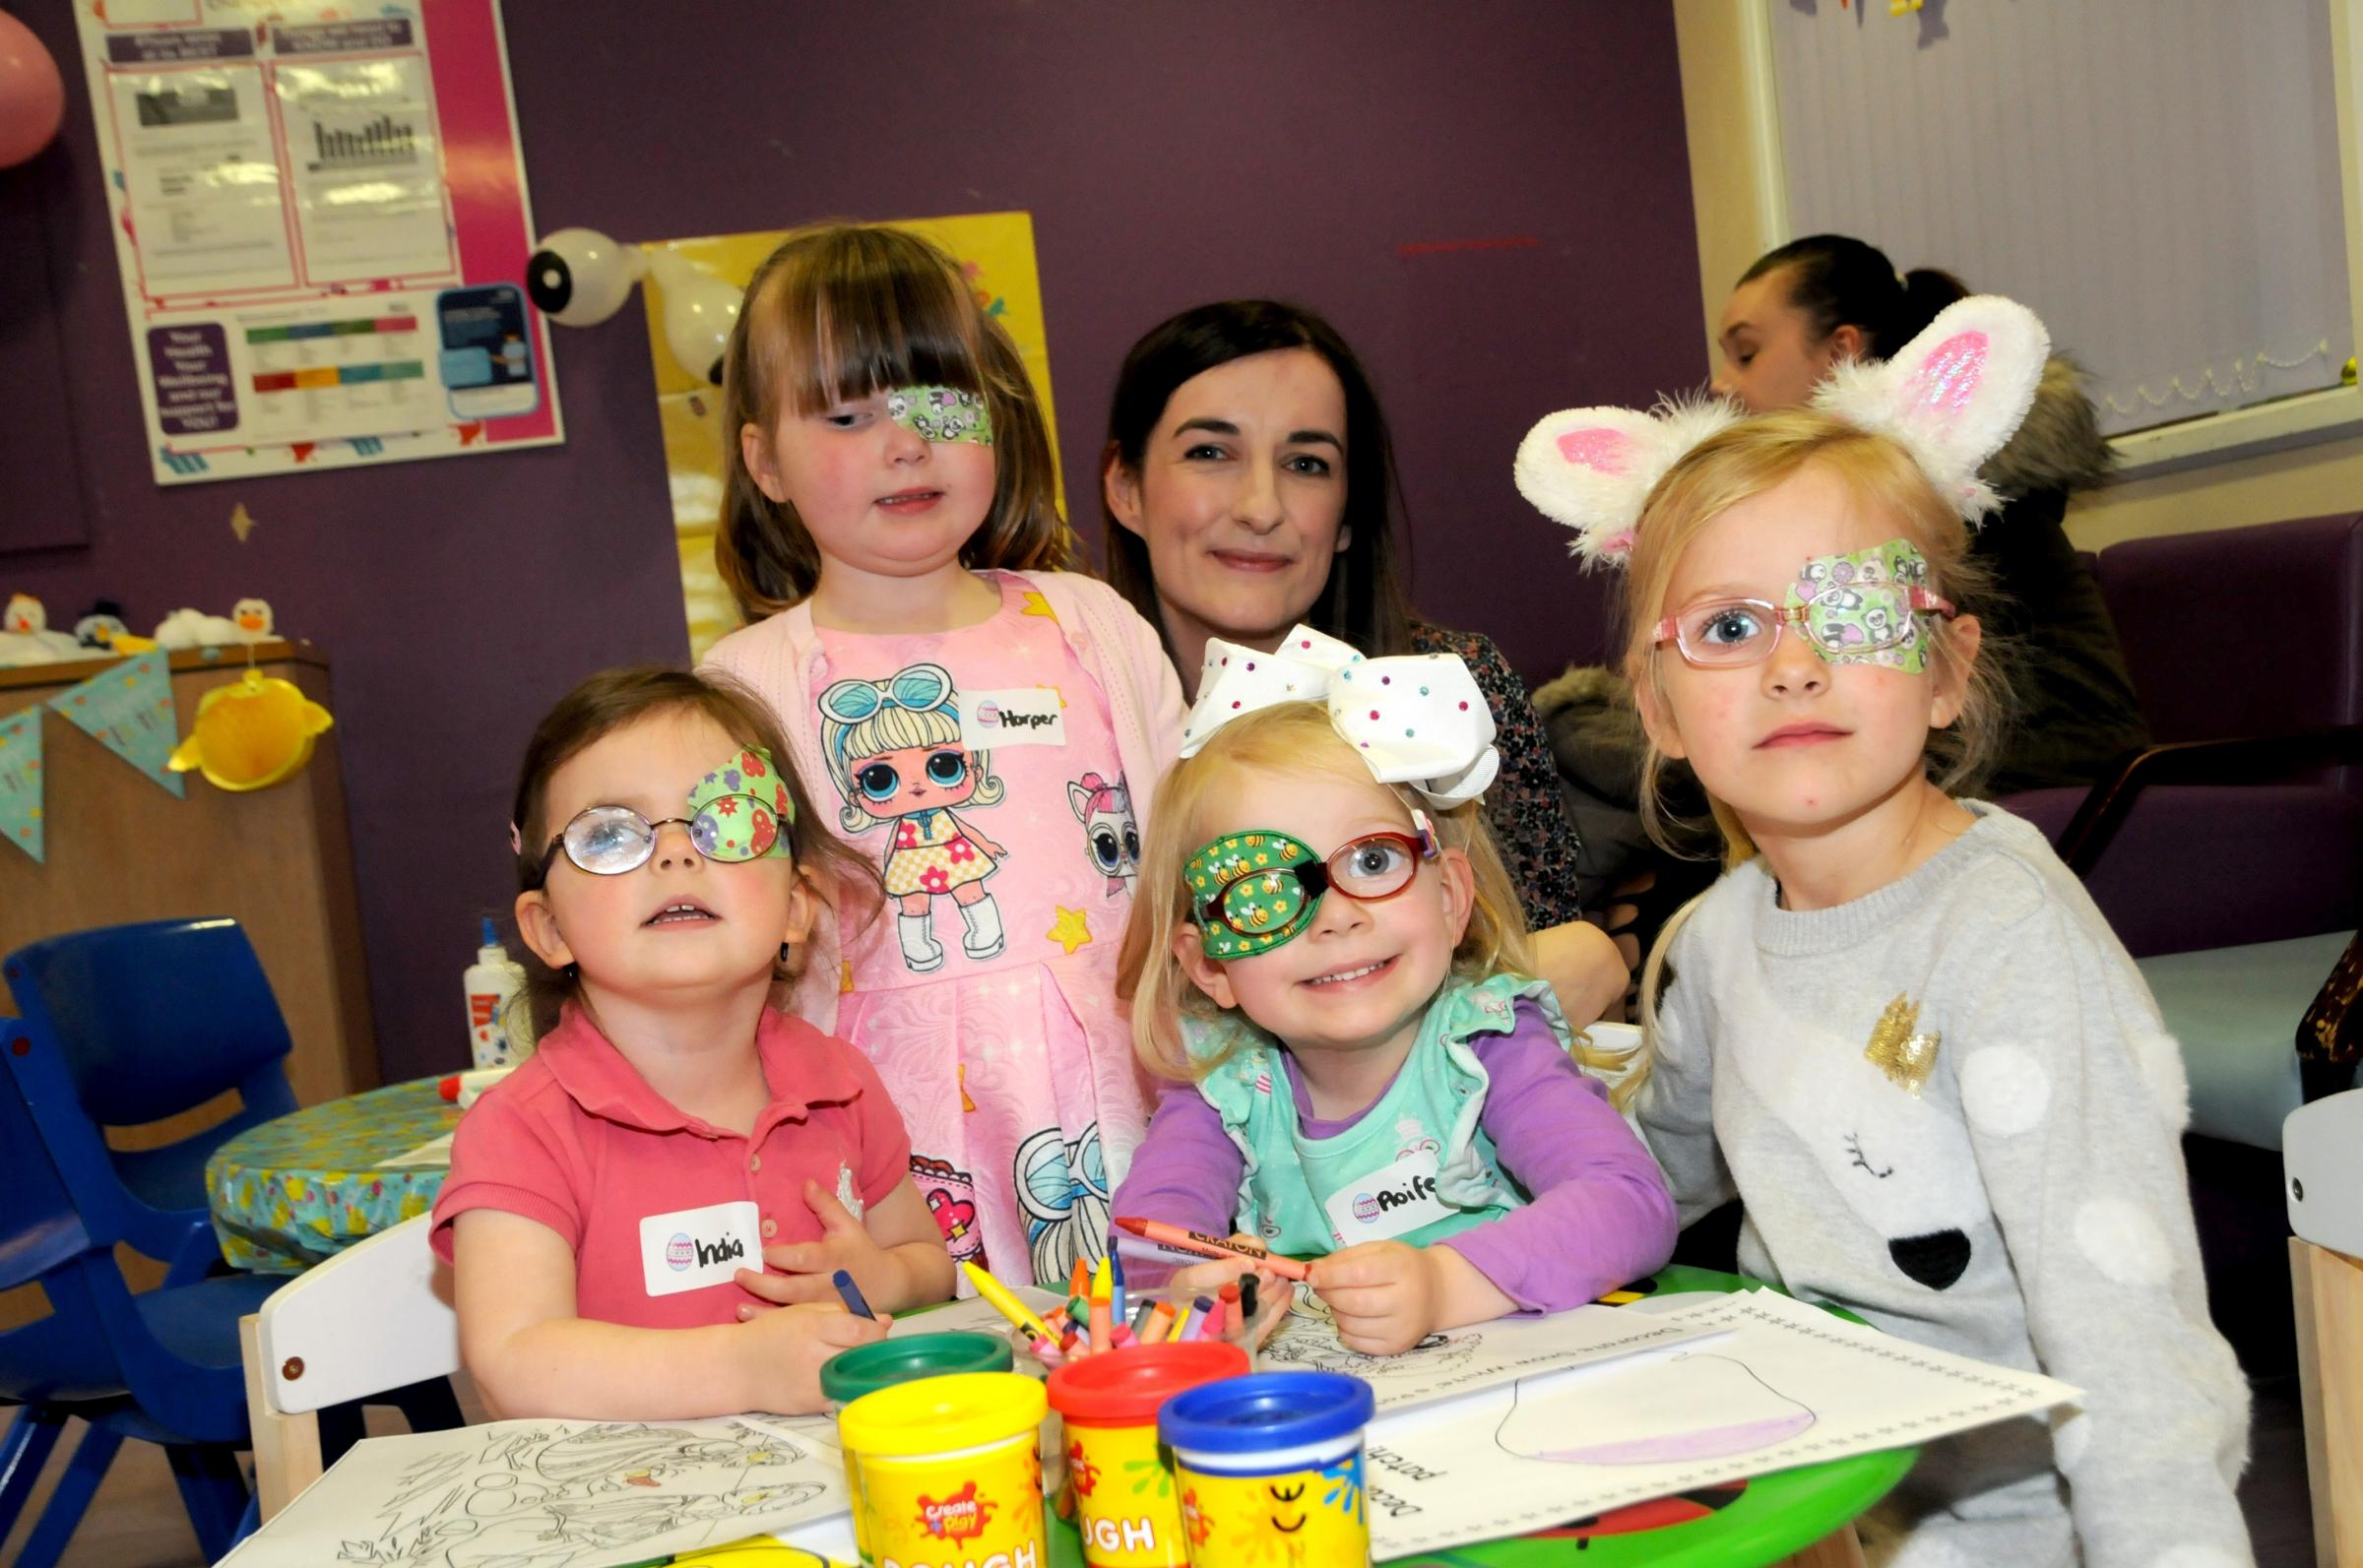 Left, India Carman aged two, Harper Hanley aged four, Jennifer Shave, specialist orthoptist, Aoife McNamara aged three and Lucy Welsby aged five